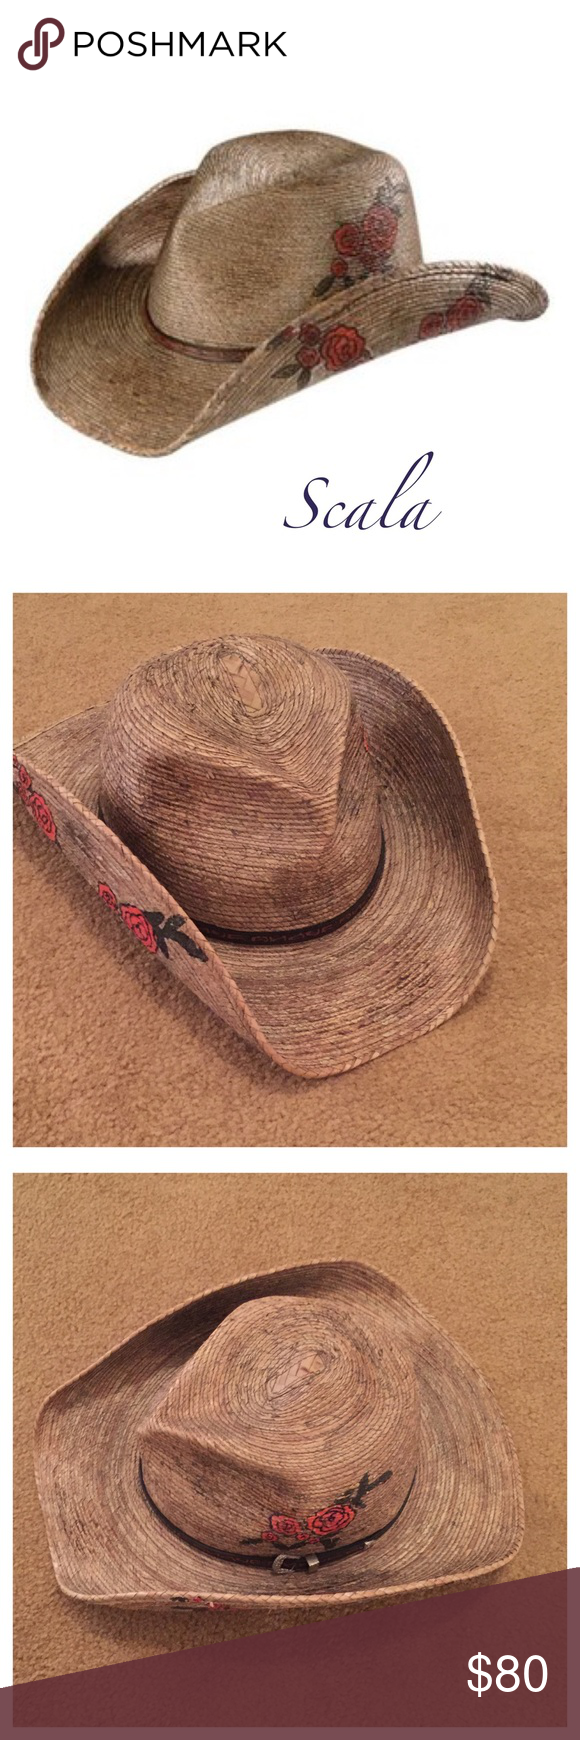 8e428712969b3 Scala Straw Cowboy Hat Hard to find Scala cowboy straw hat with roses size  L